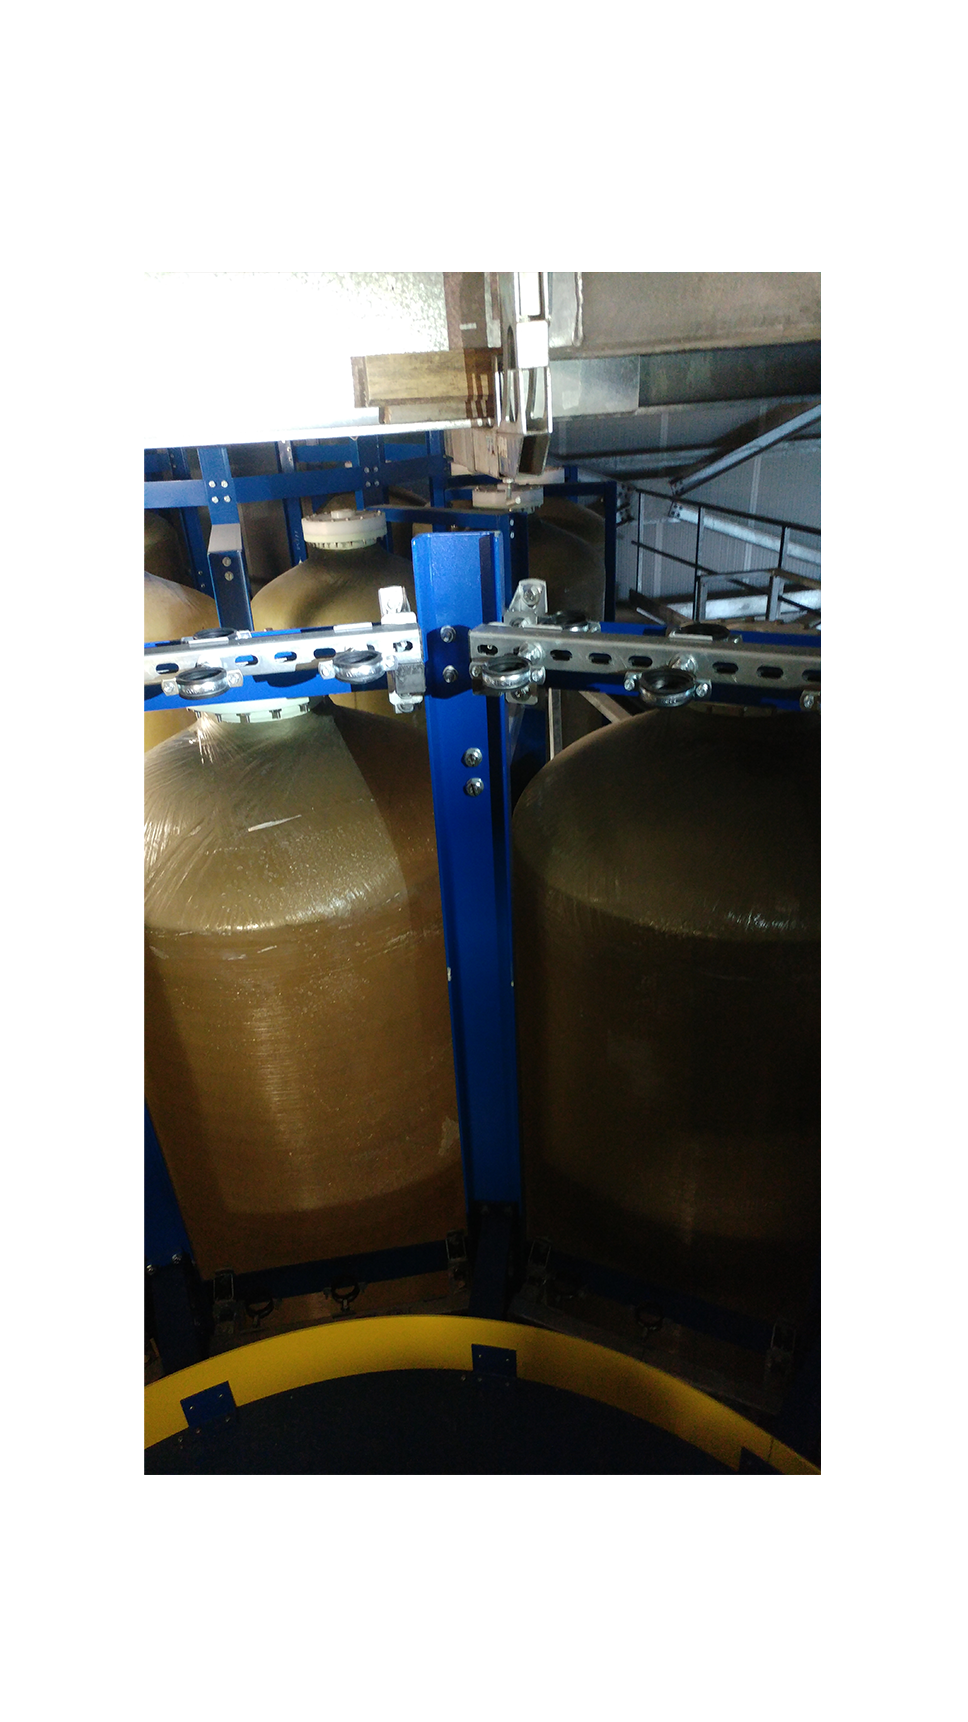 Work done at a rotating carousel used for the distribution and filling of alcohol tank